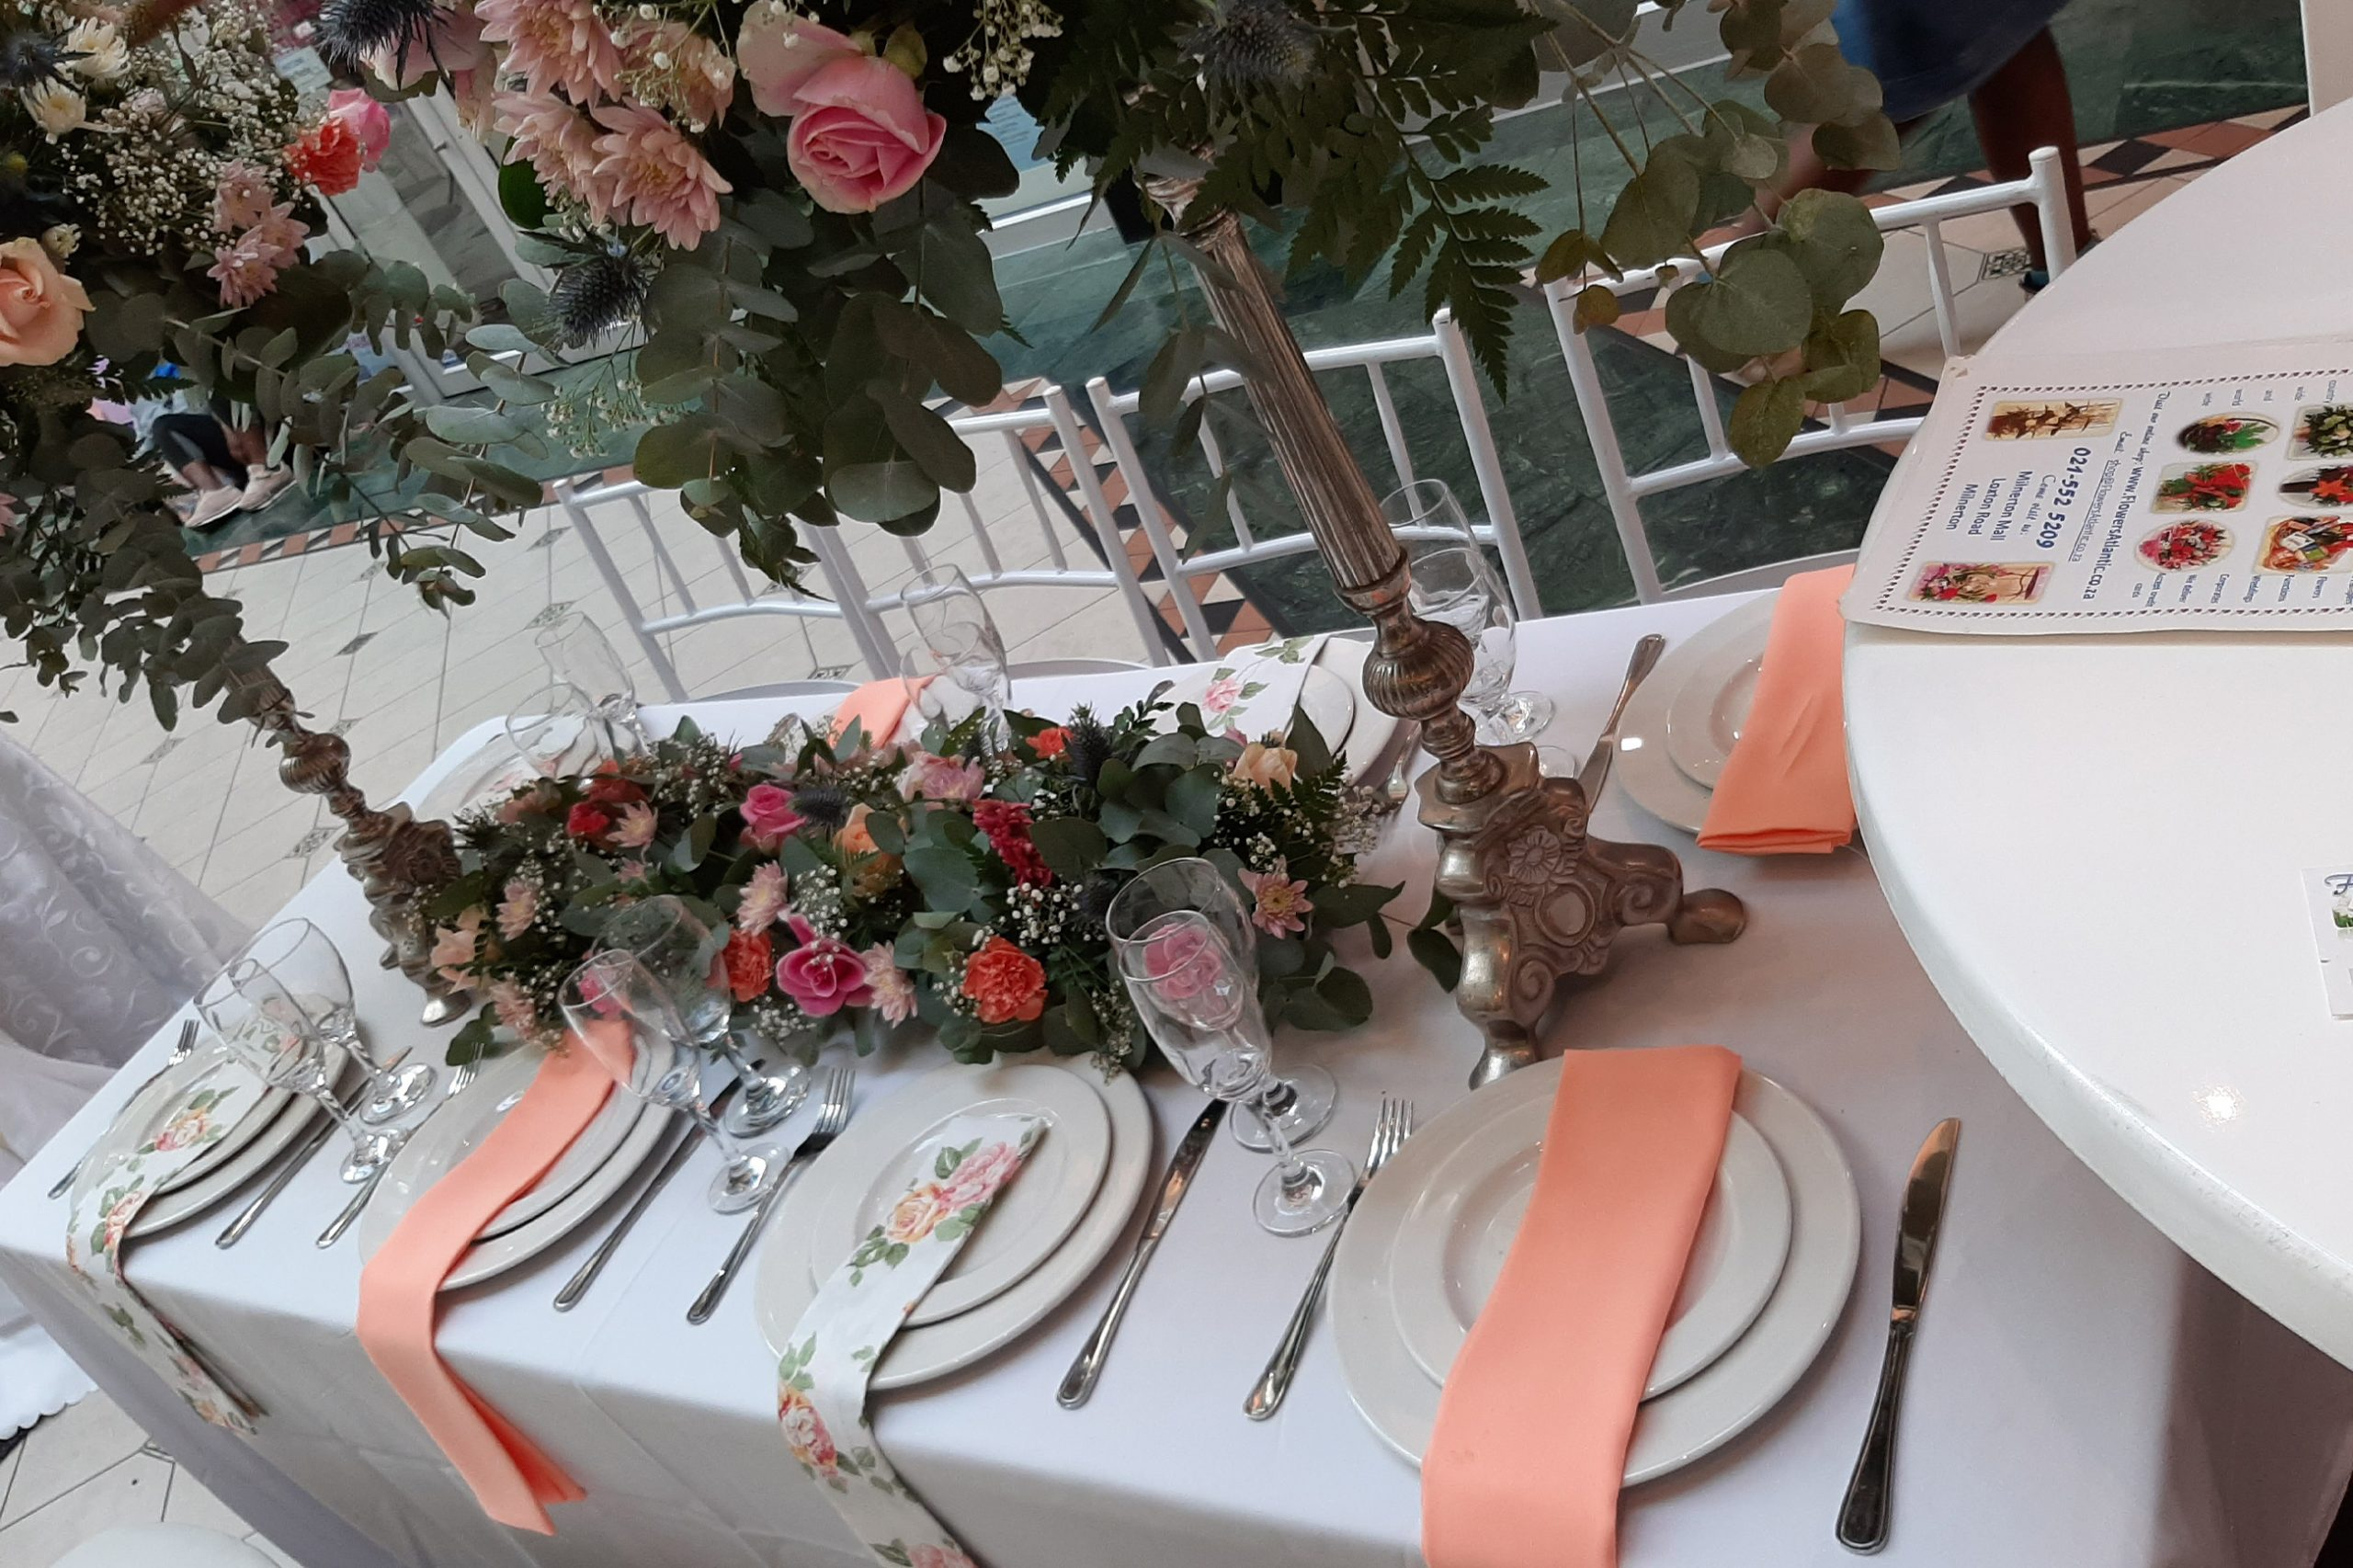 Styling Perfect Events - Decor & Hiring Cape Town